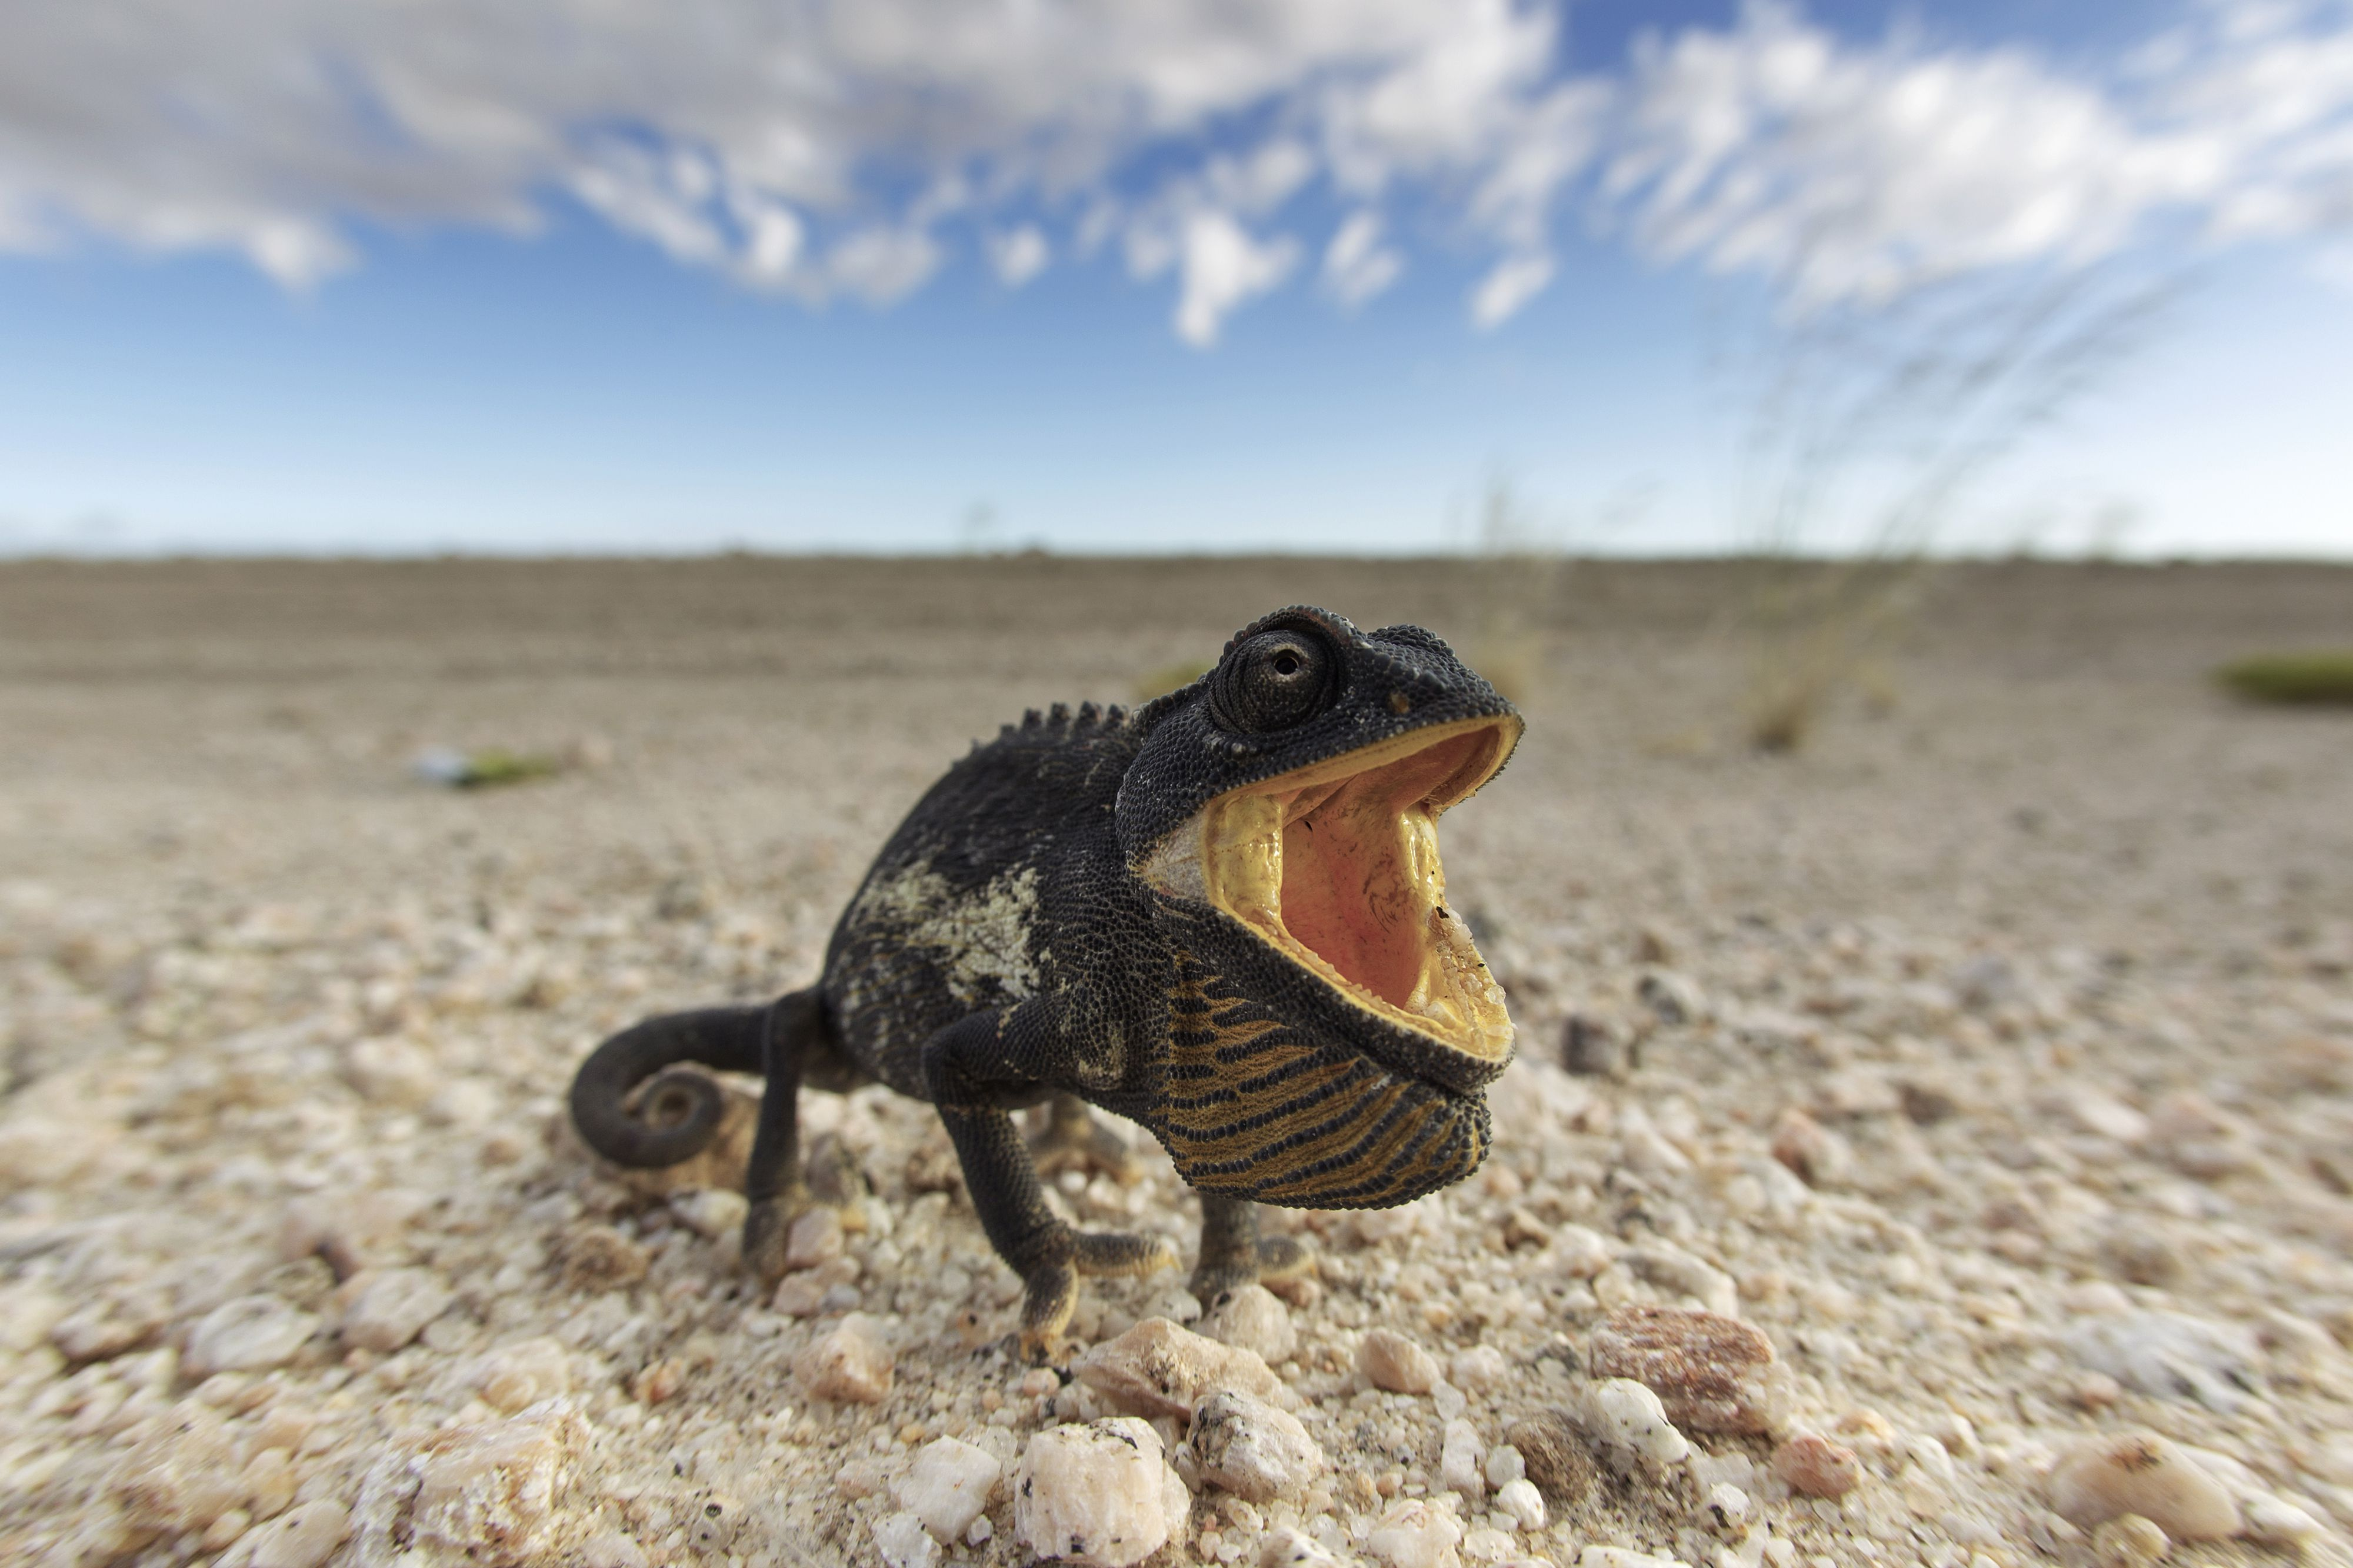 A Namaqua chameleon in the Namib desert, turned black and with an open, bright mouth as a threat display